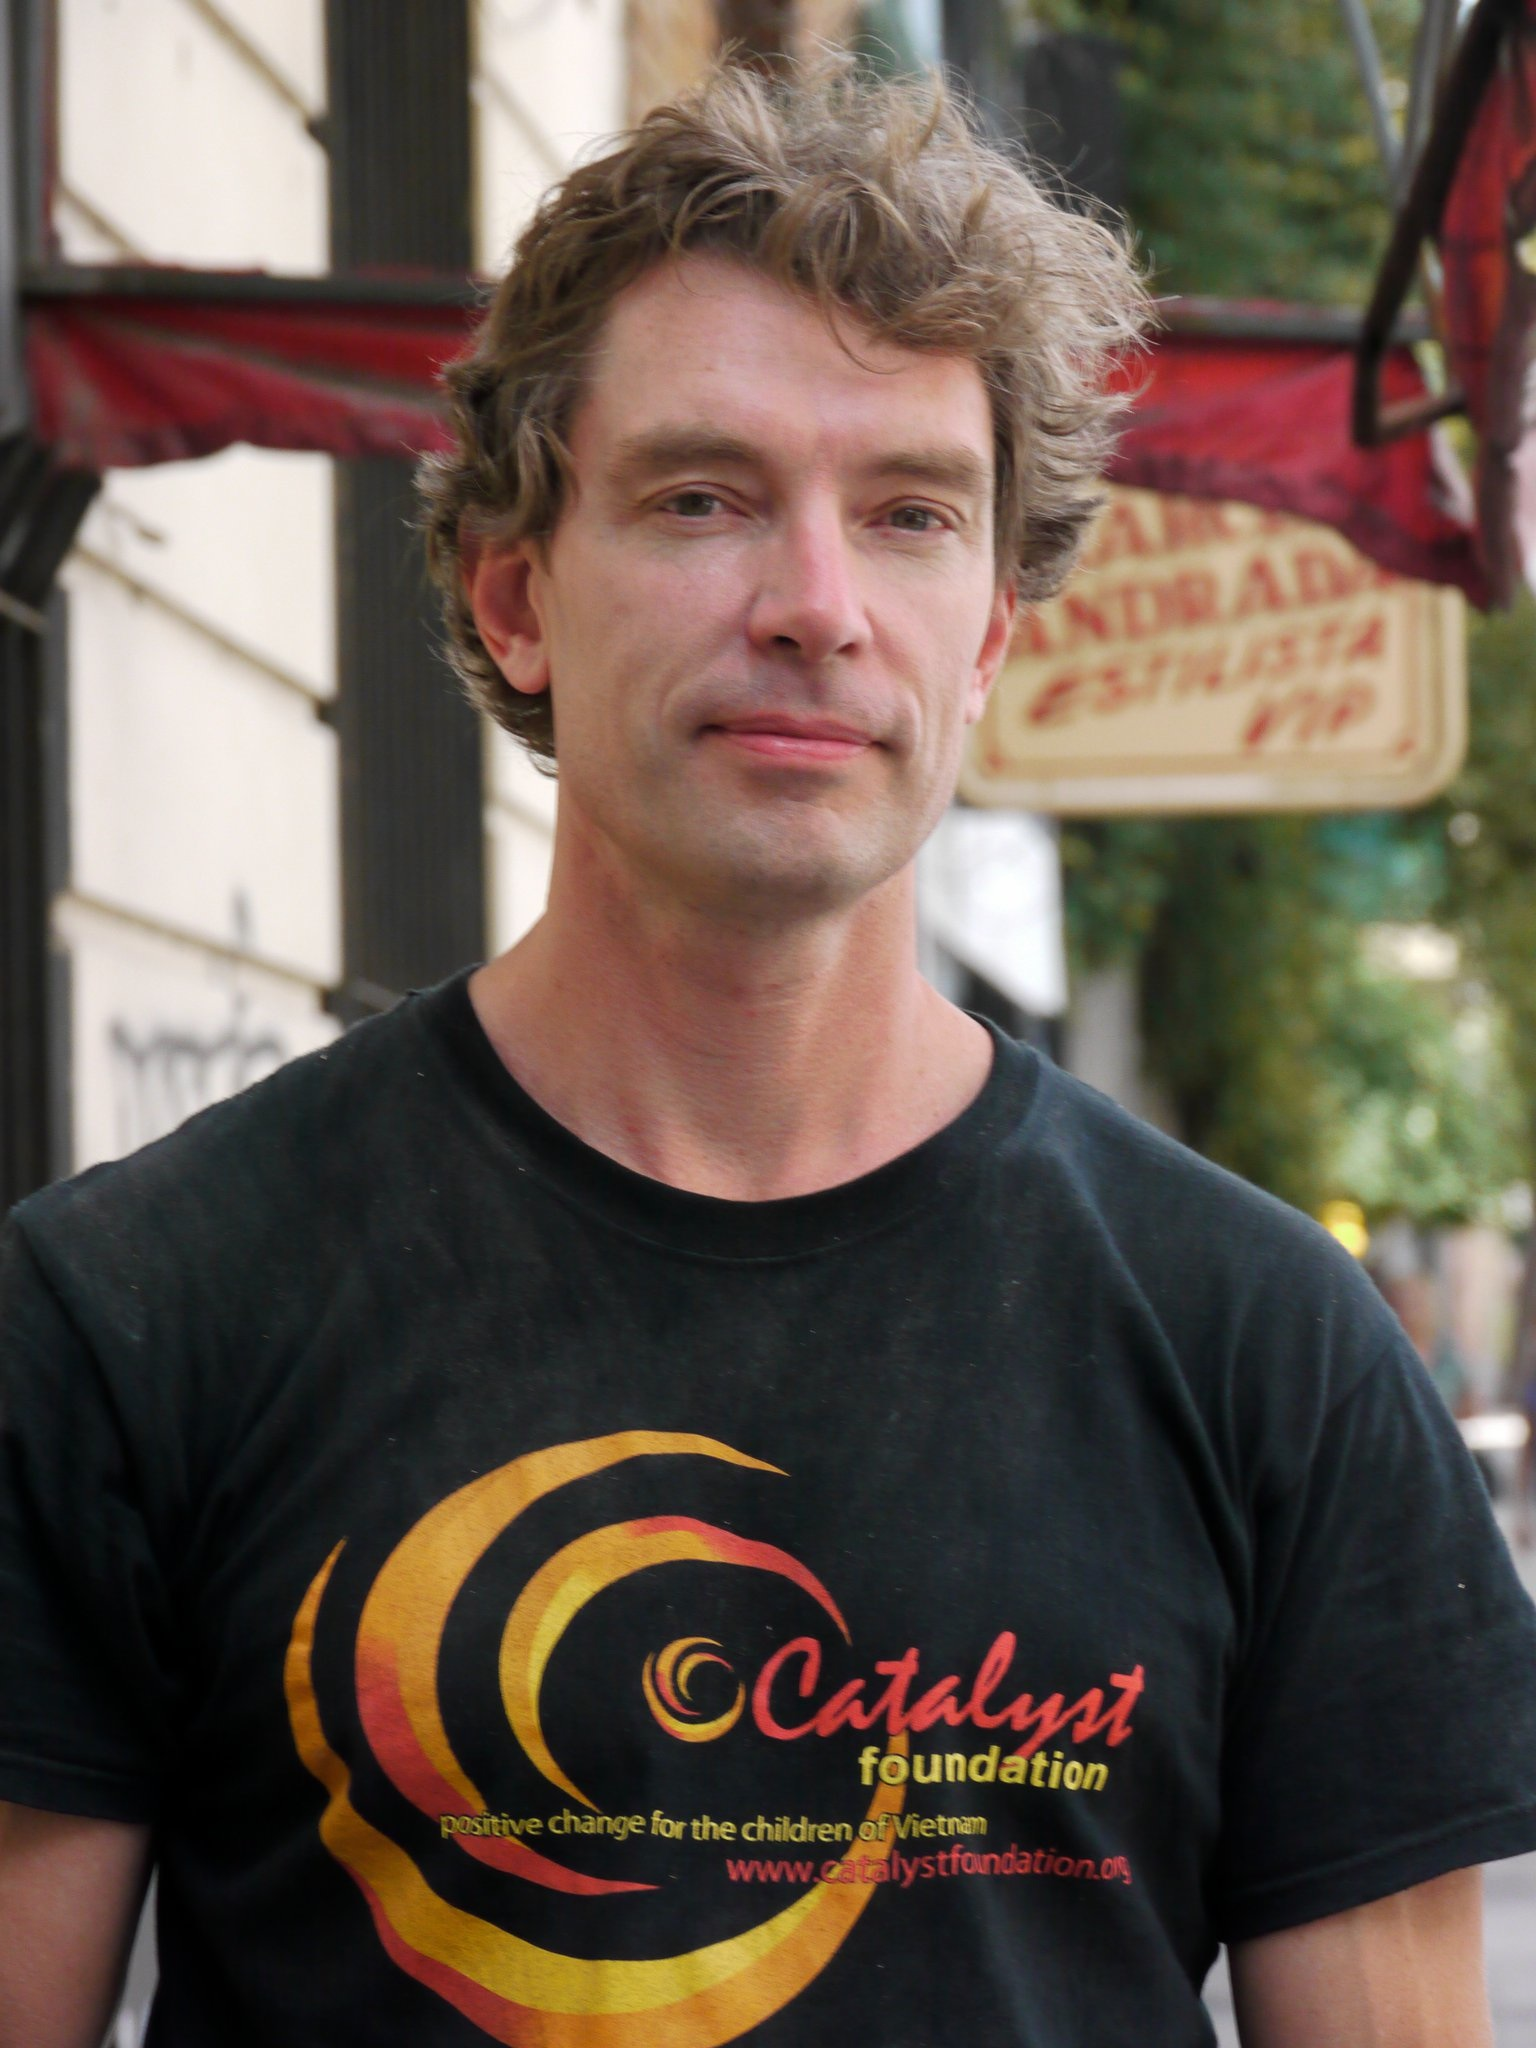 Roadmonkey founder and CEO Paul von Zielbauer